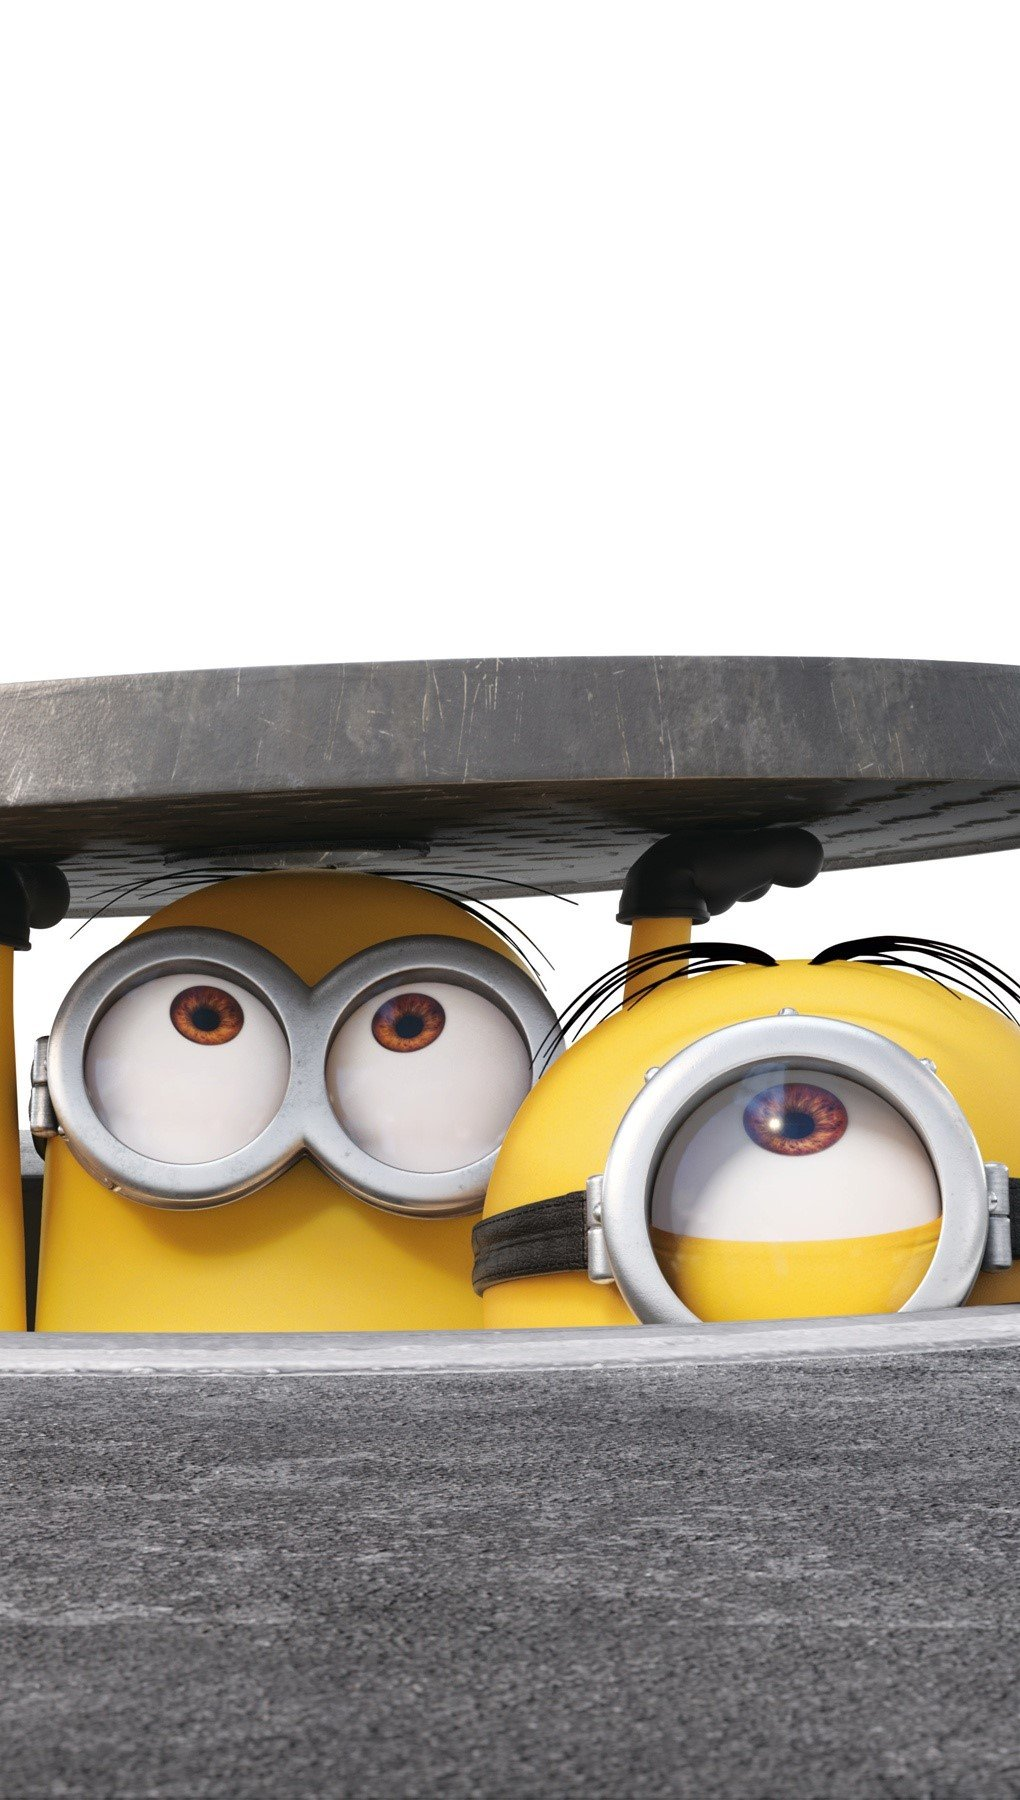 Wallpaper Minions in a sewer Vertical